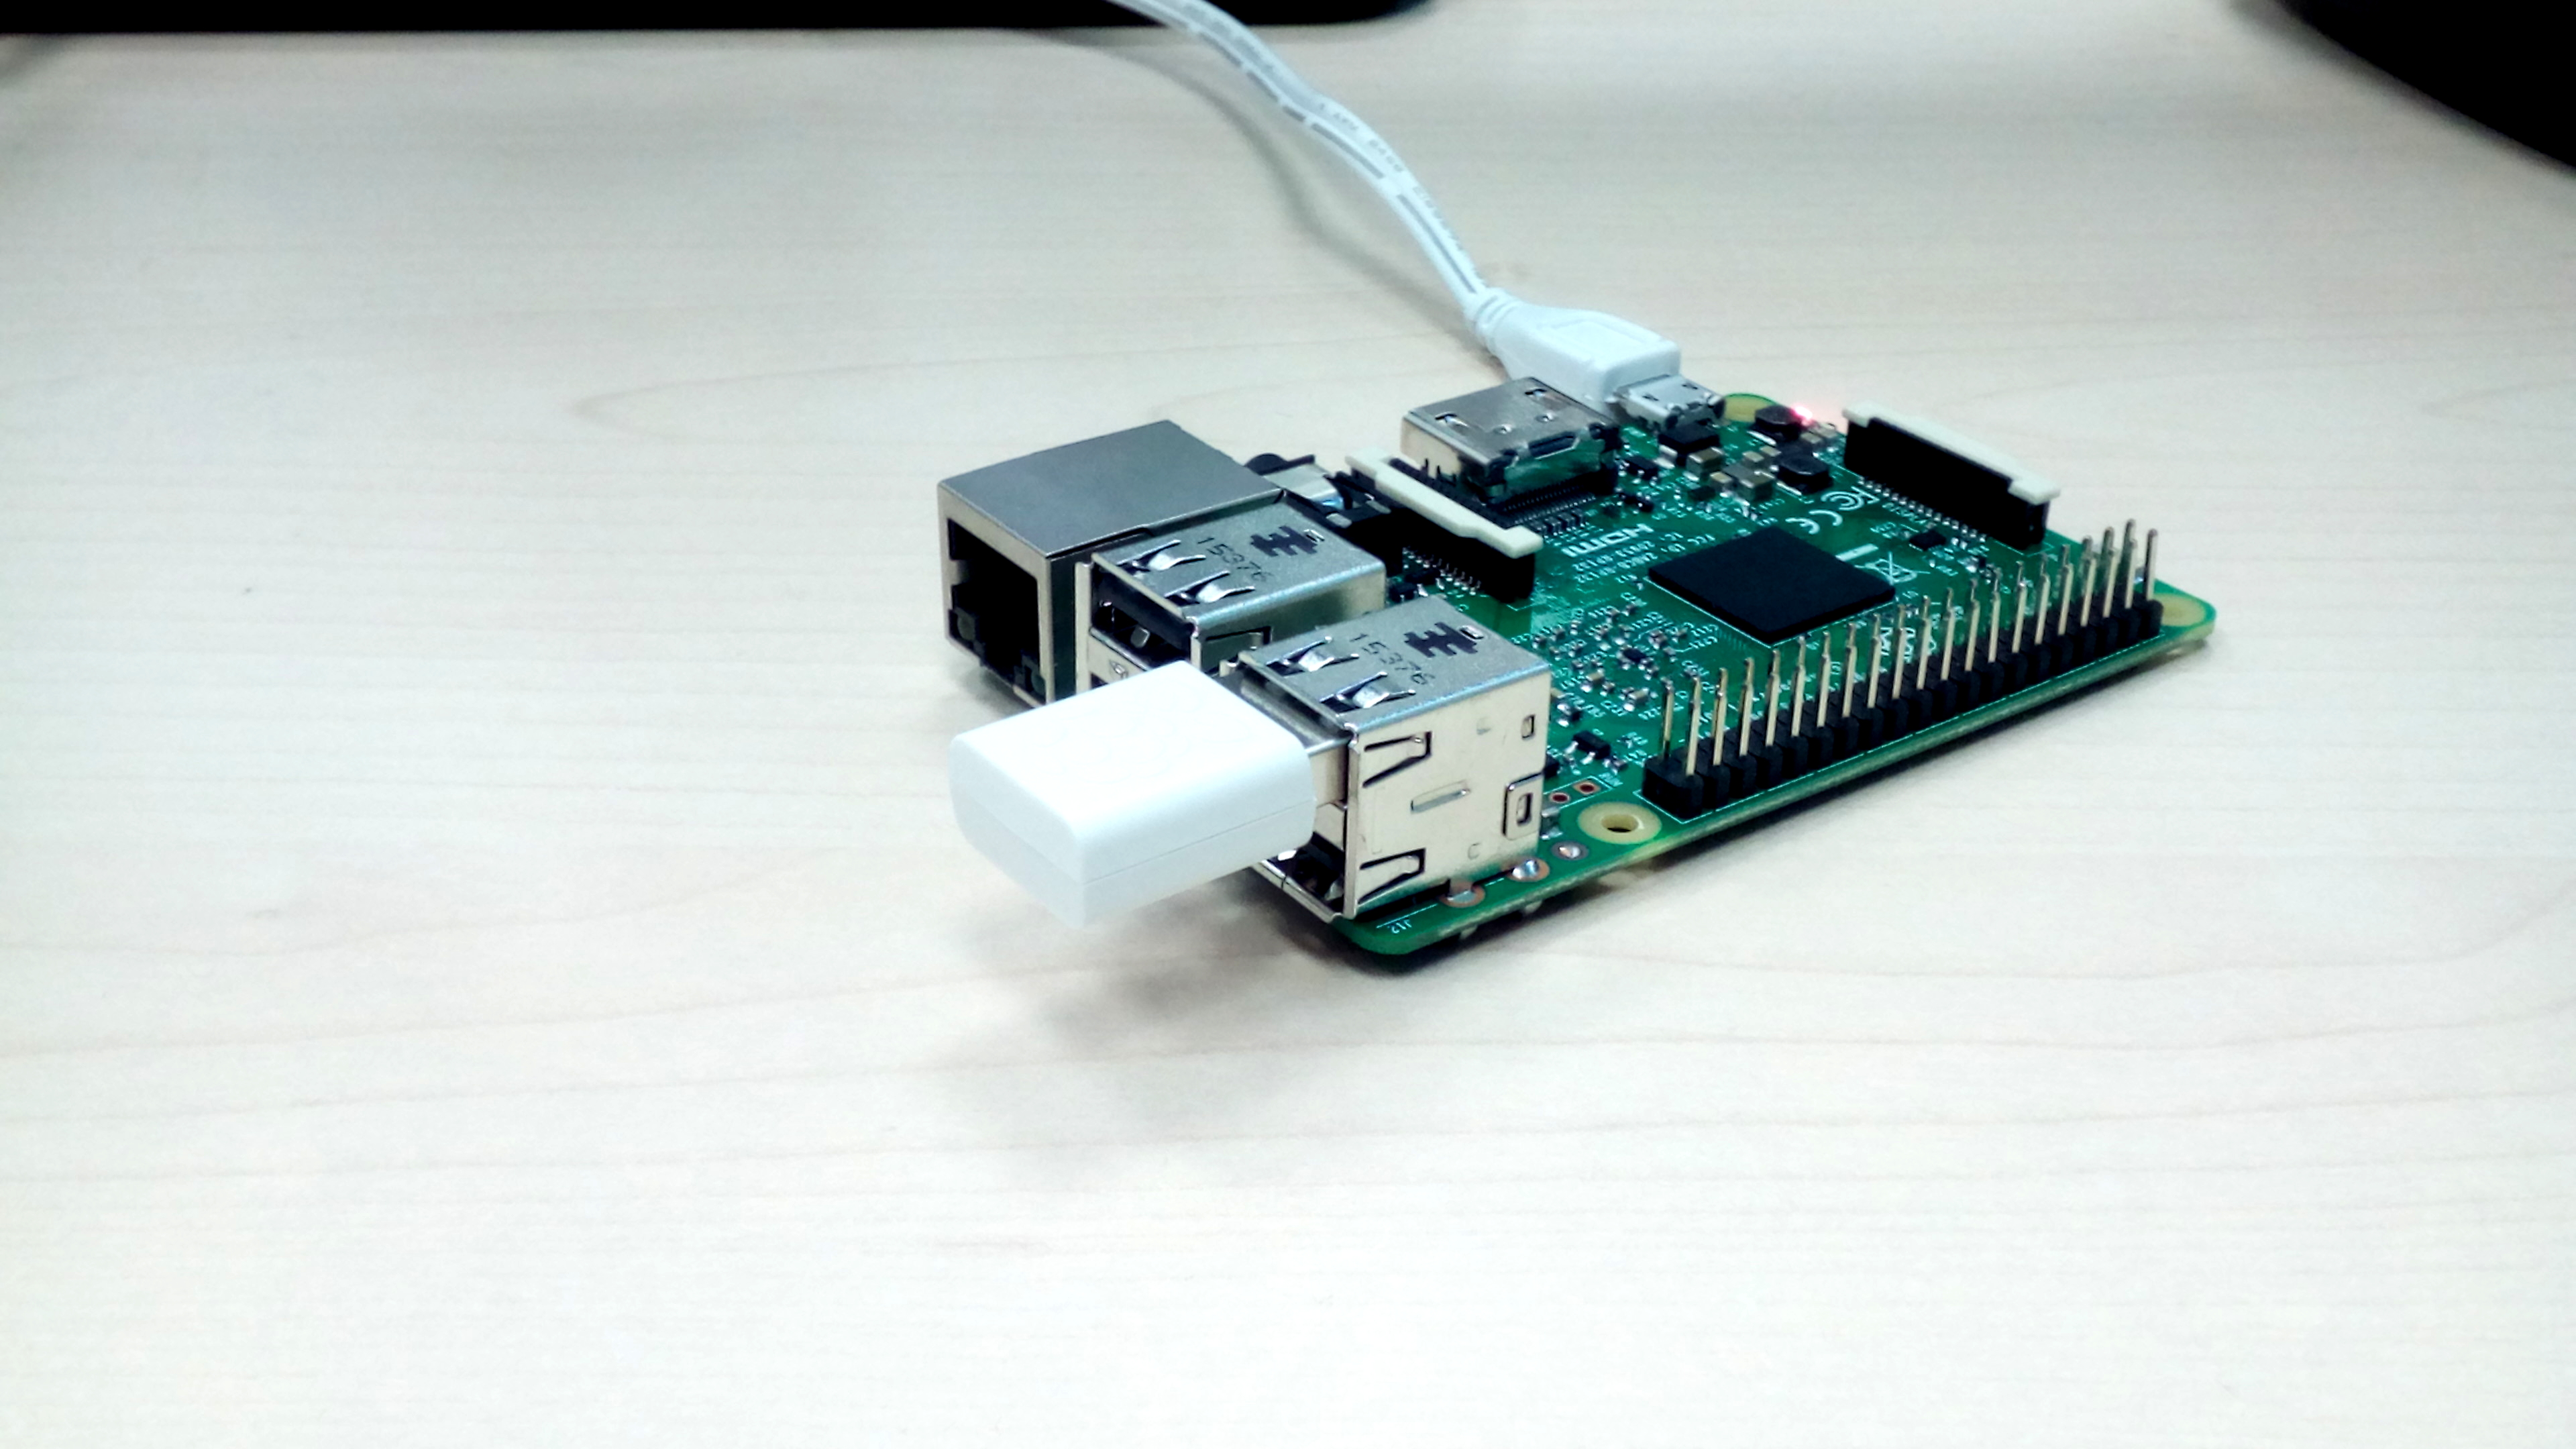 Raspberry Pi using WiFi module